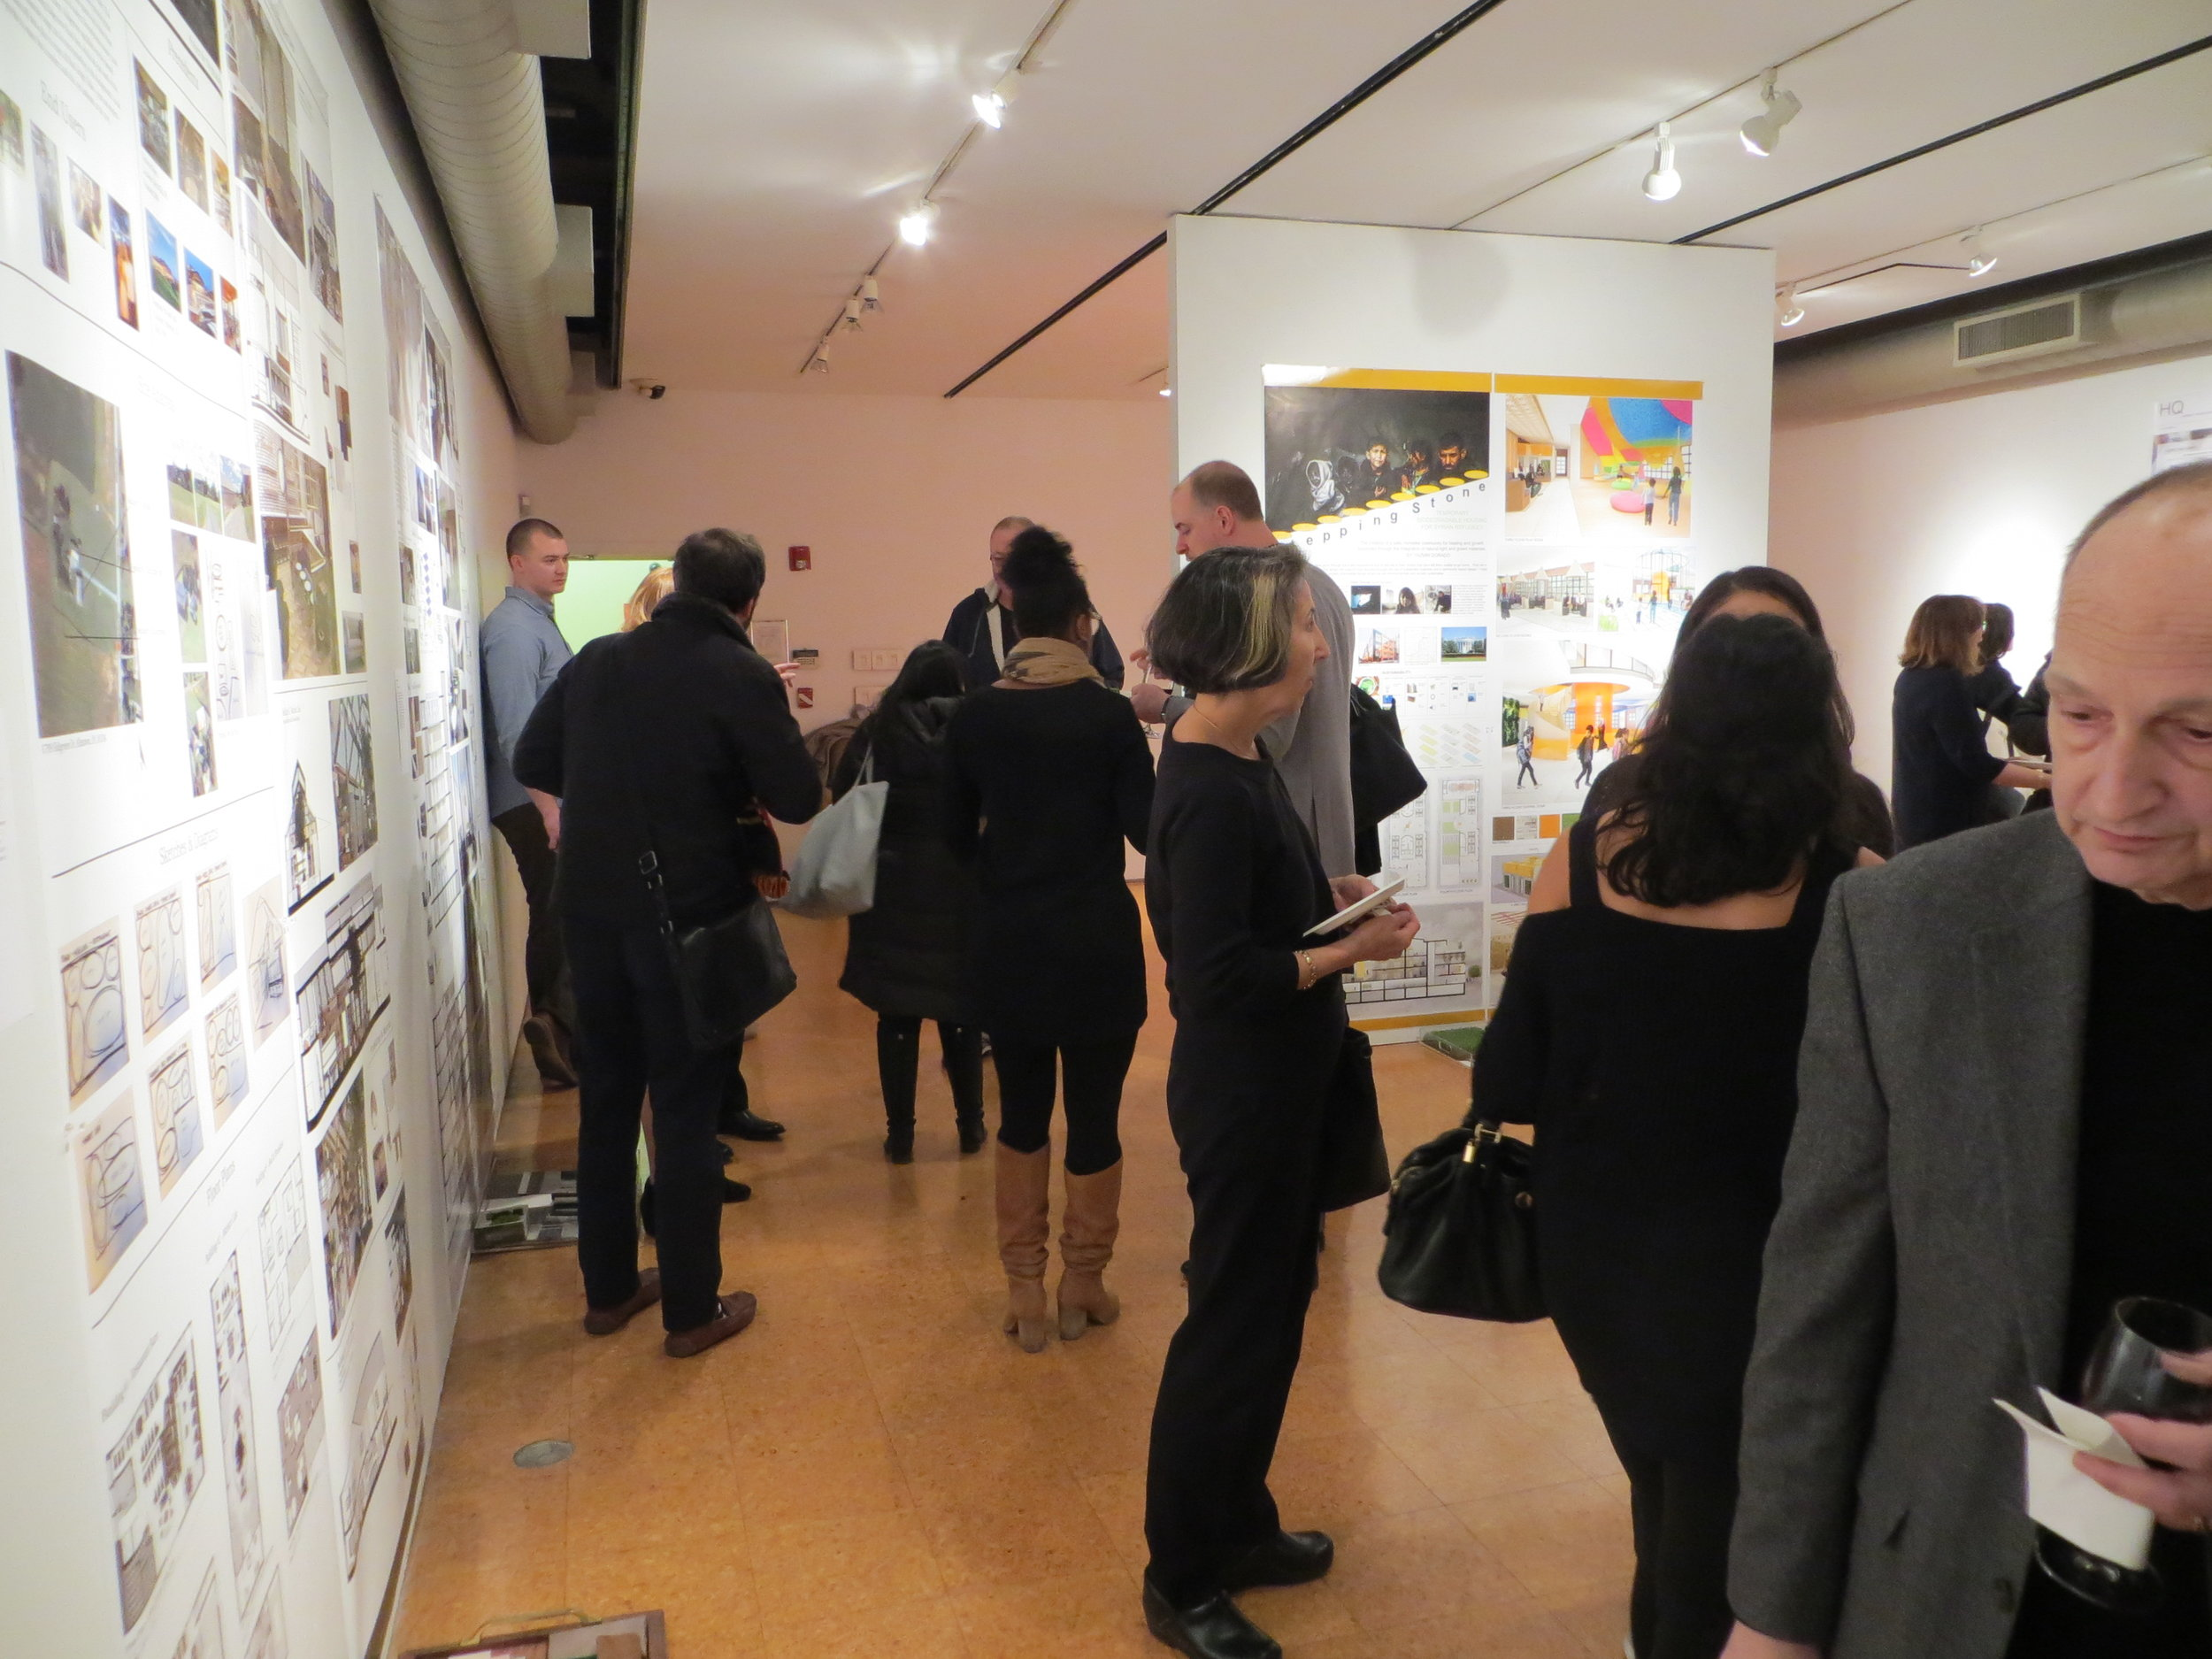 bfa-2017-winter-thesis-projects-exhibition_32753250275_o.jpg